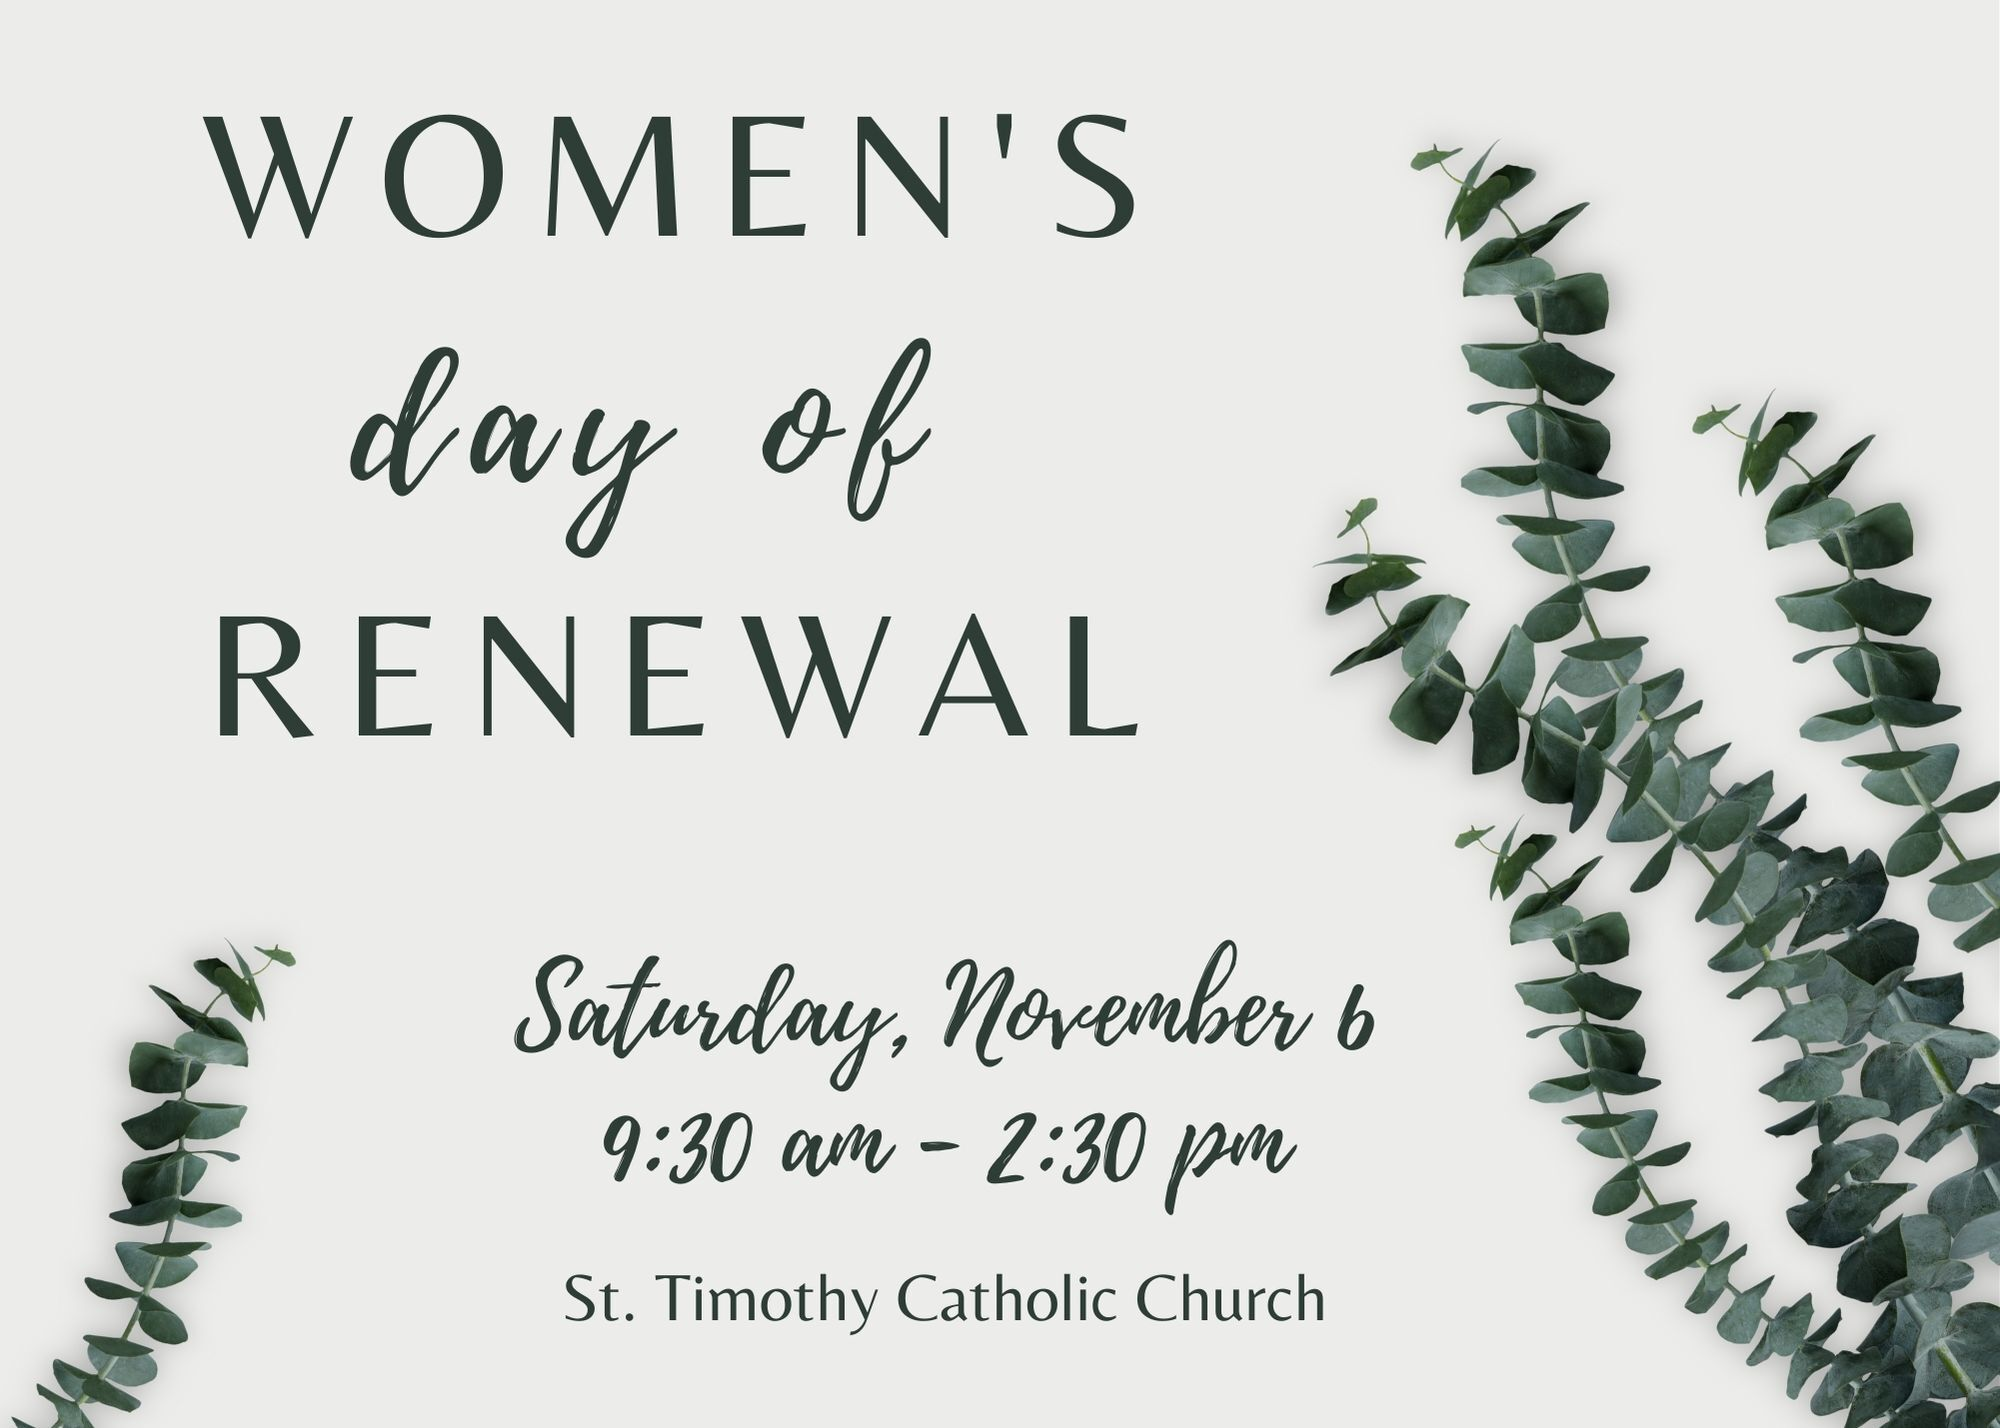 Women's day of RENEWAL